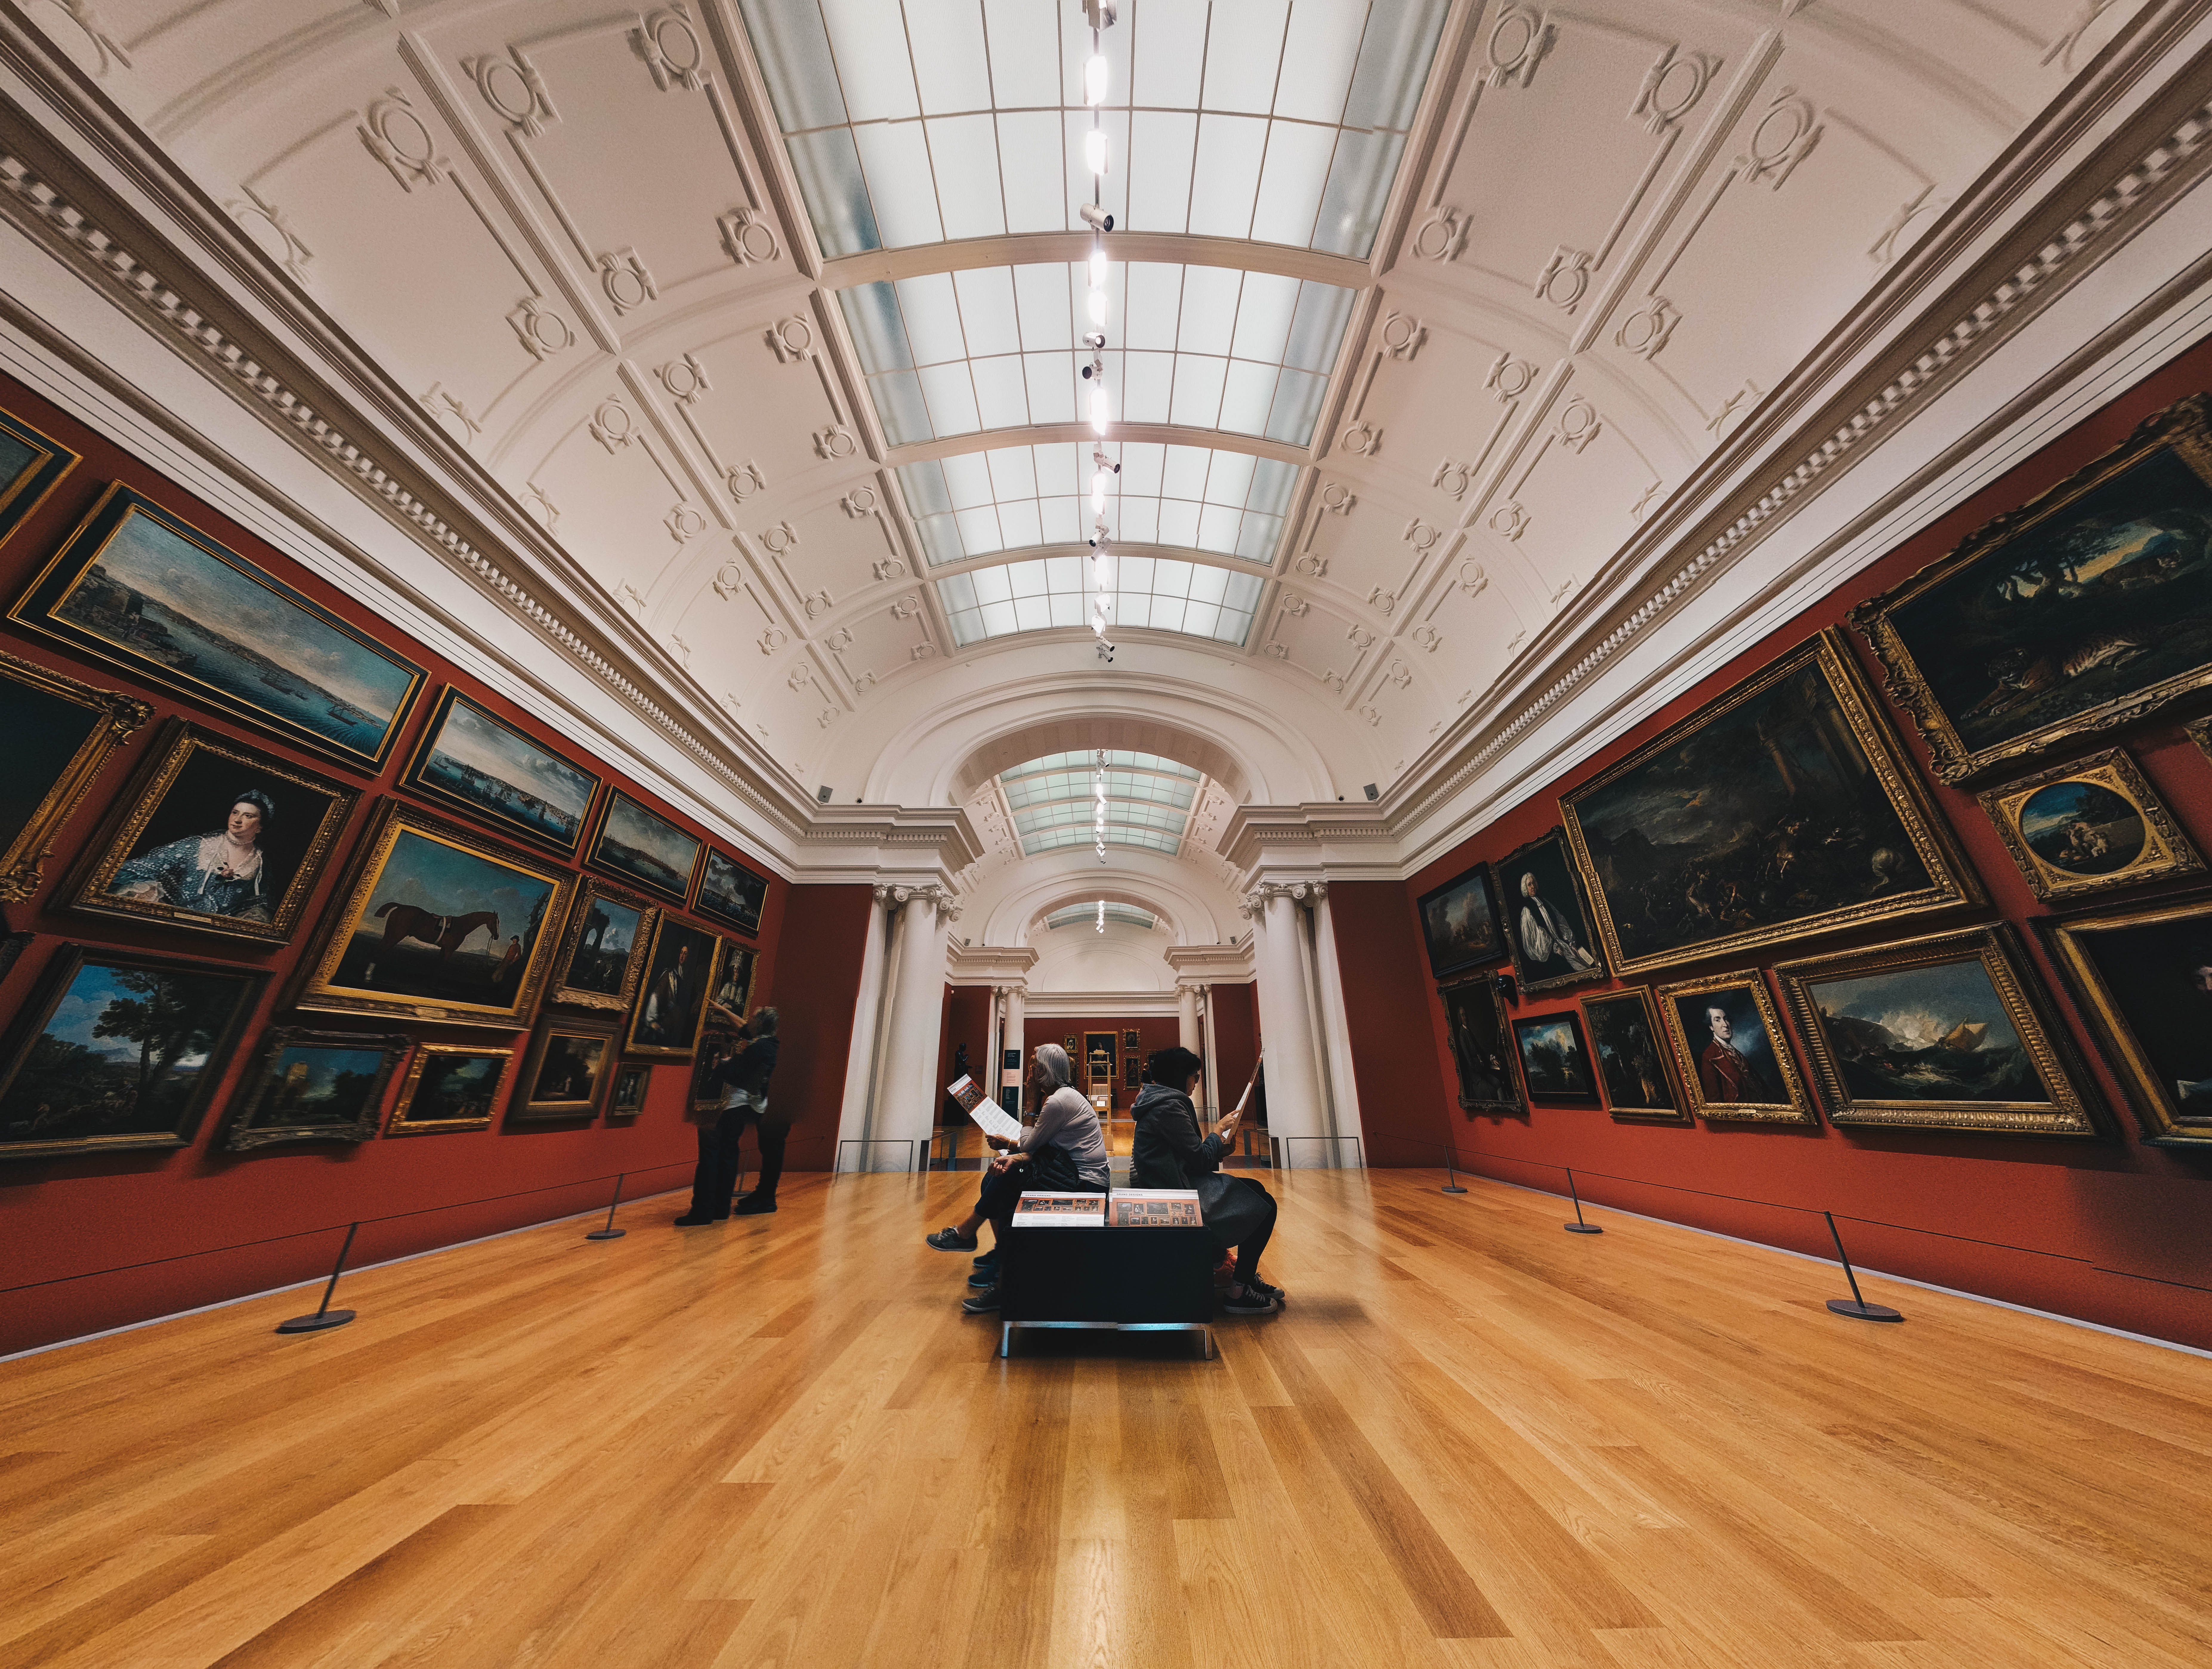 photo of people in museum